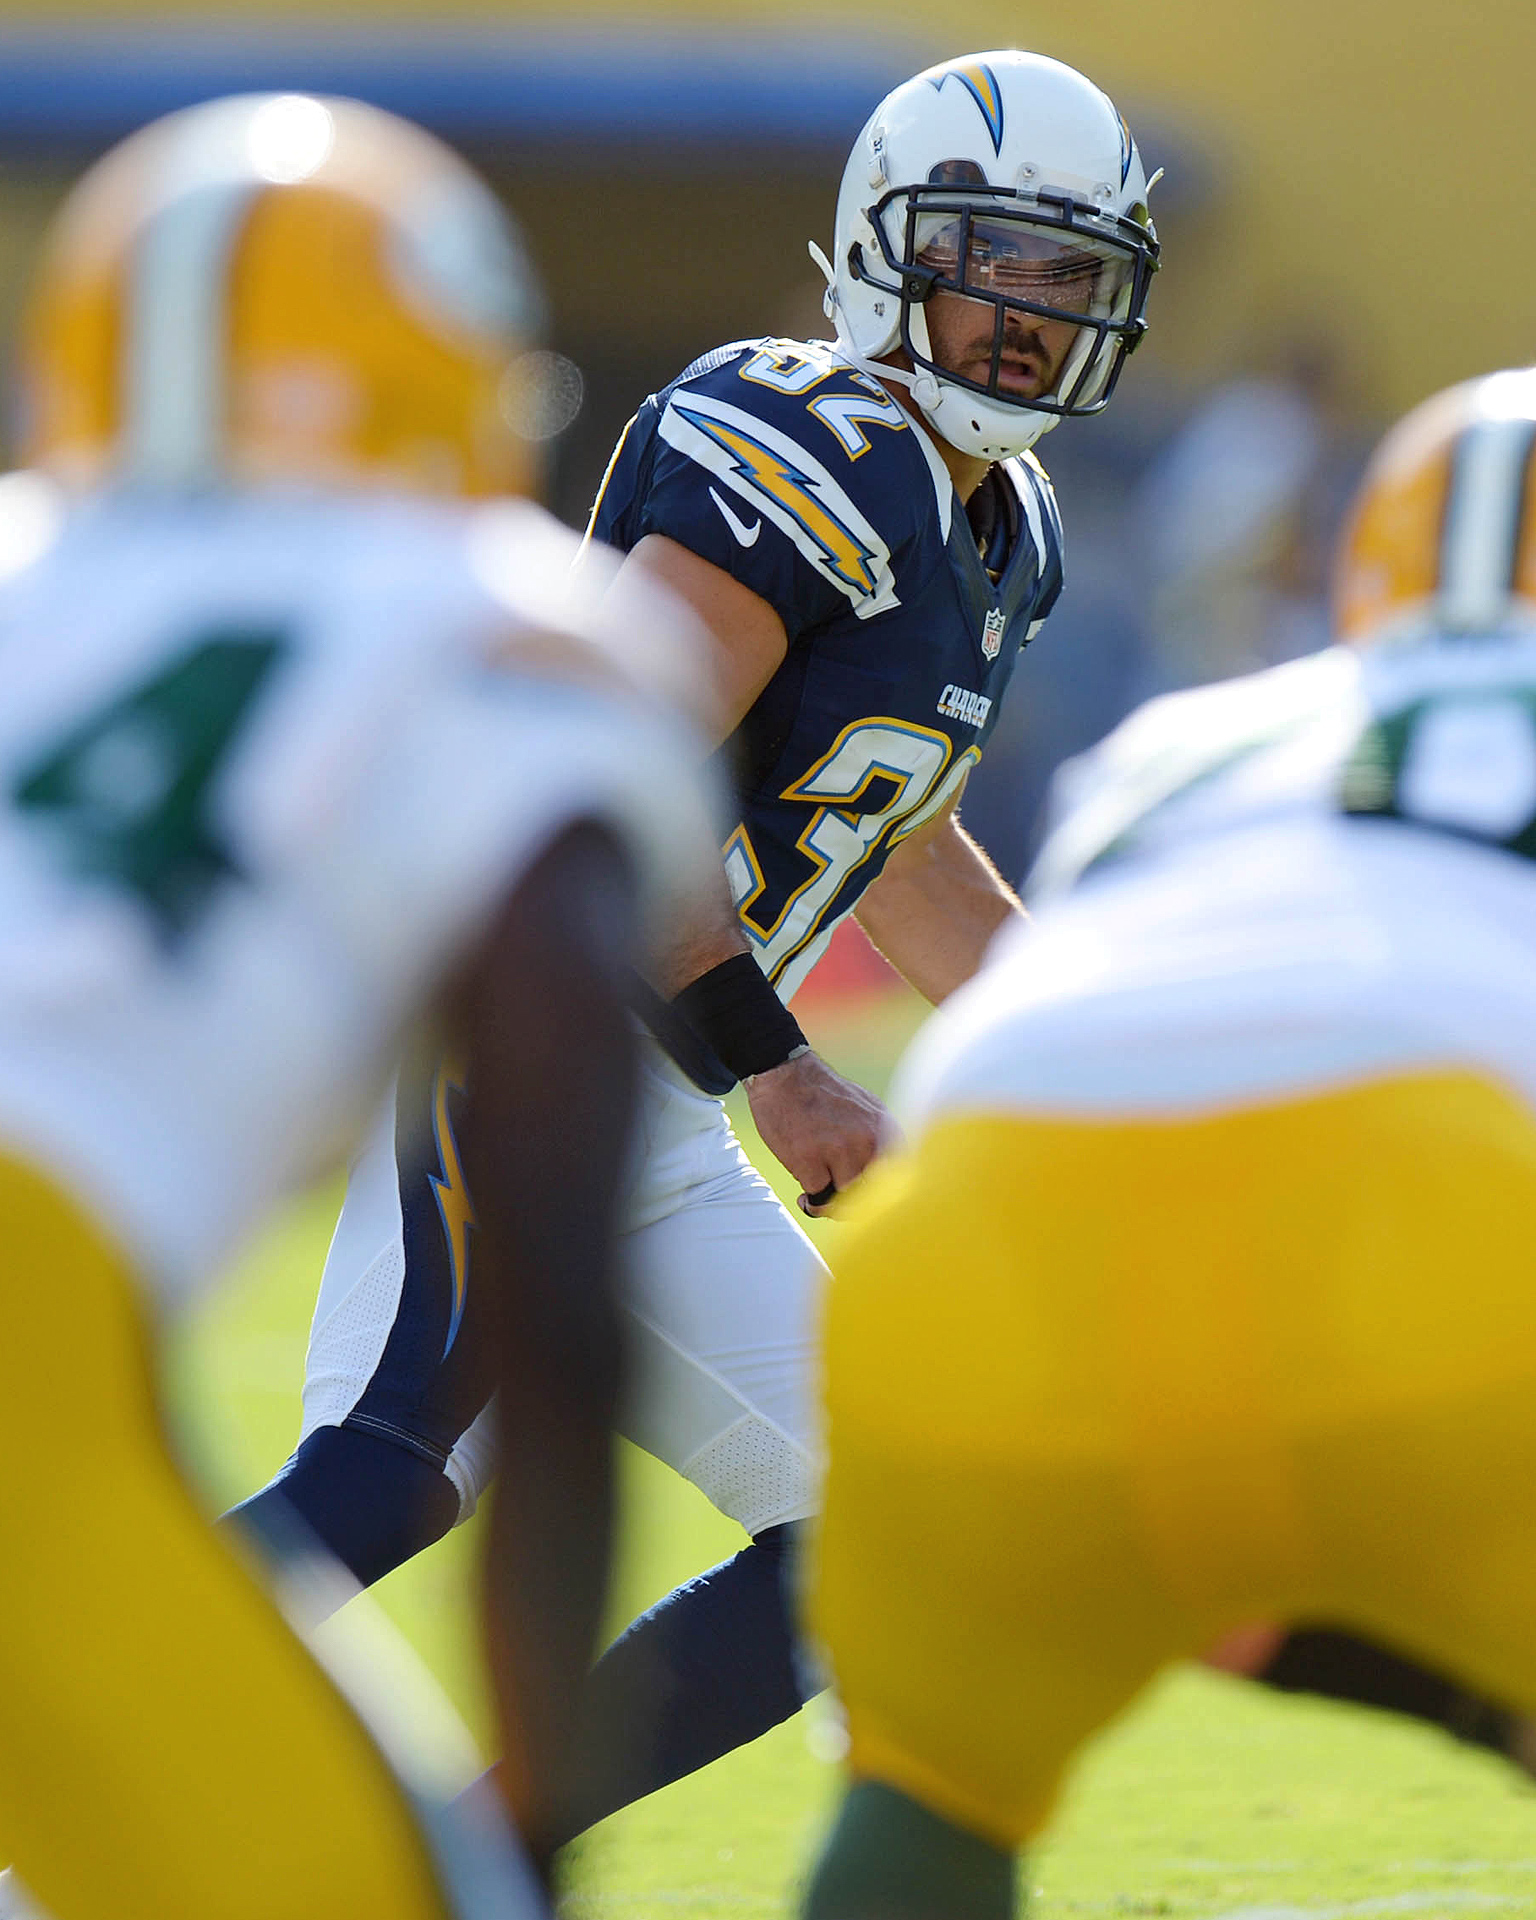 San Diego Chargers Espn: SAFETY: Eric Weddle, San Diego Chargers